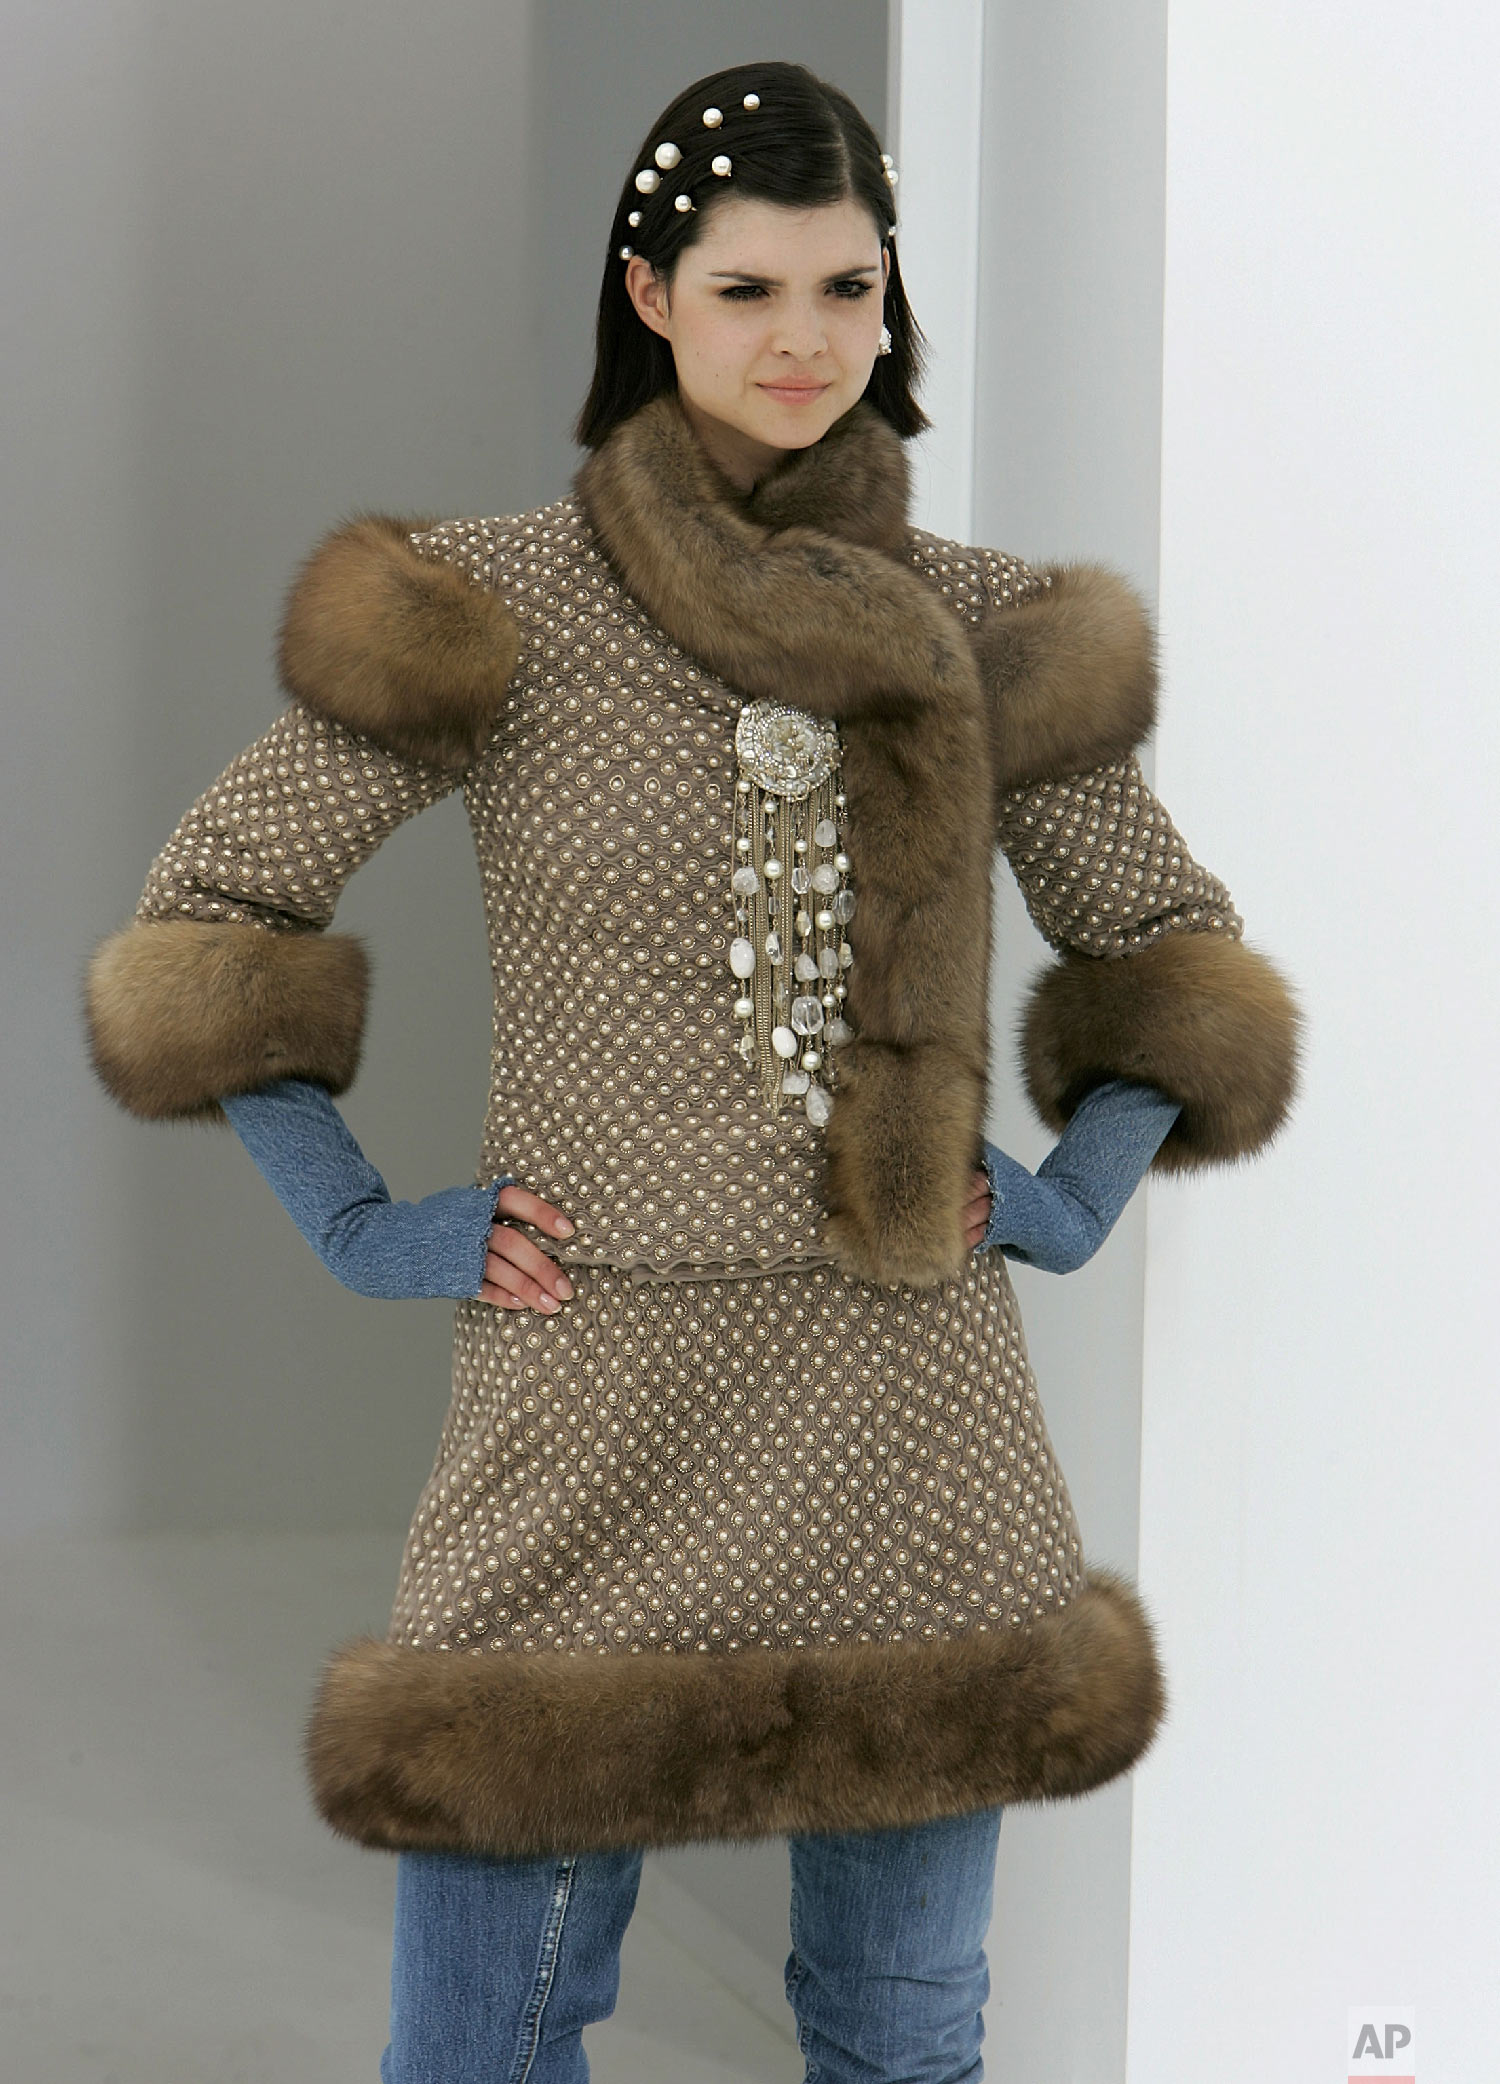 A model presents a creation by Lagerfeld in Paris, July 6, 2006. (AP Photo/Michel Euler)